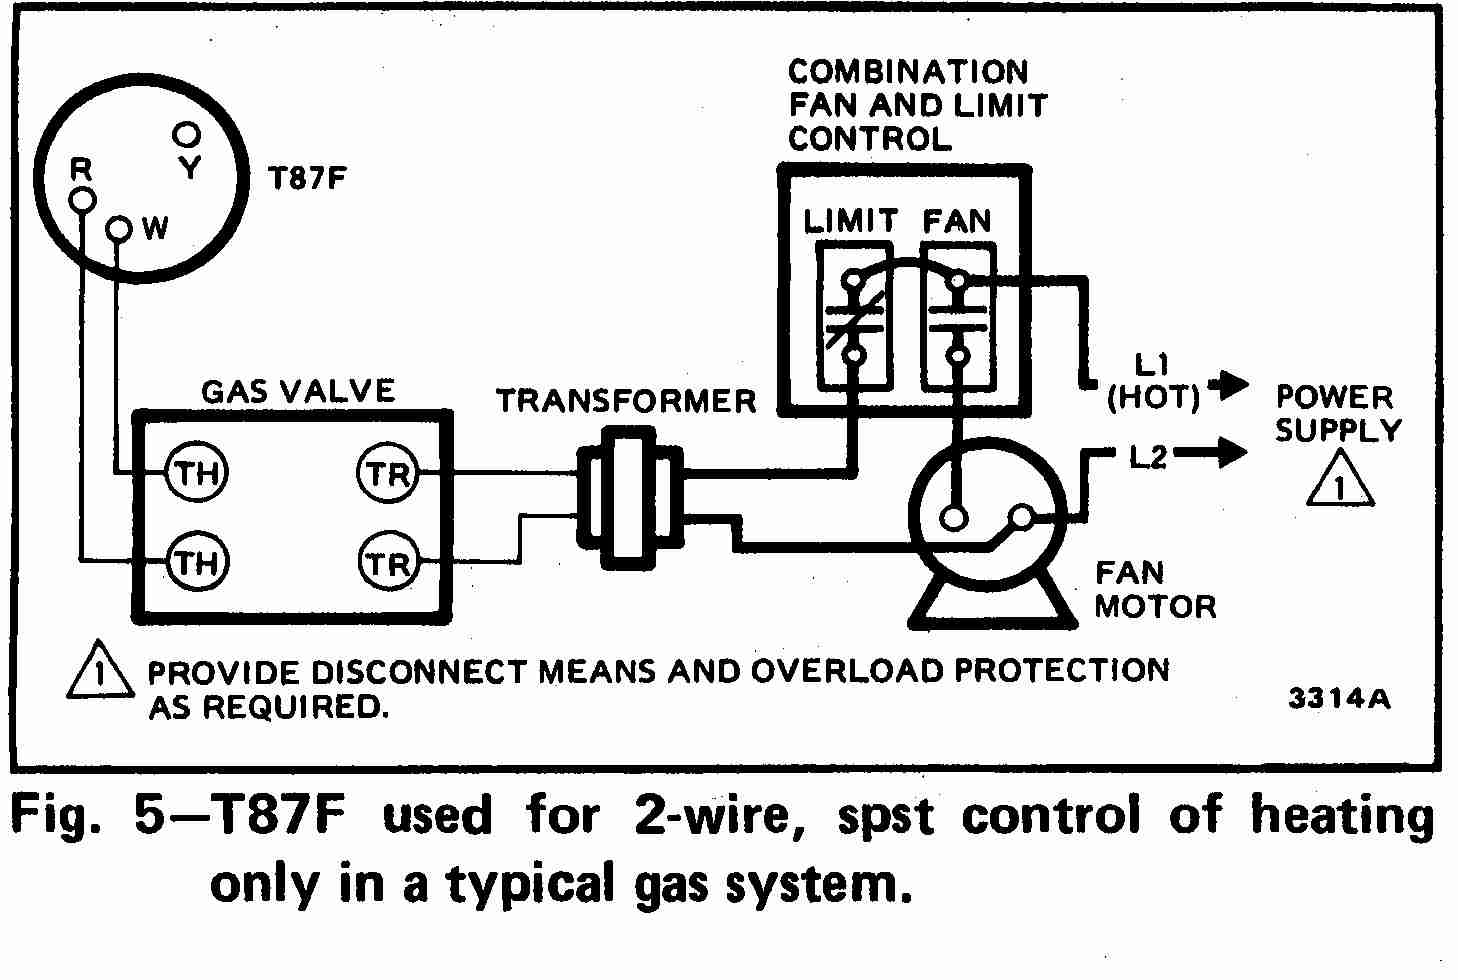 TT_T87F_0002_2Wg_DJF room thermostat wiring diagrams for hvac systems 2 wire thermostat wiring diagram at bayanpartner.co